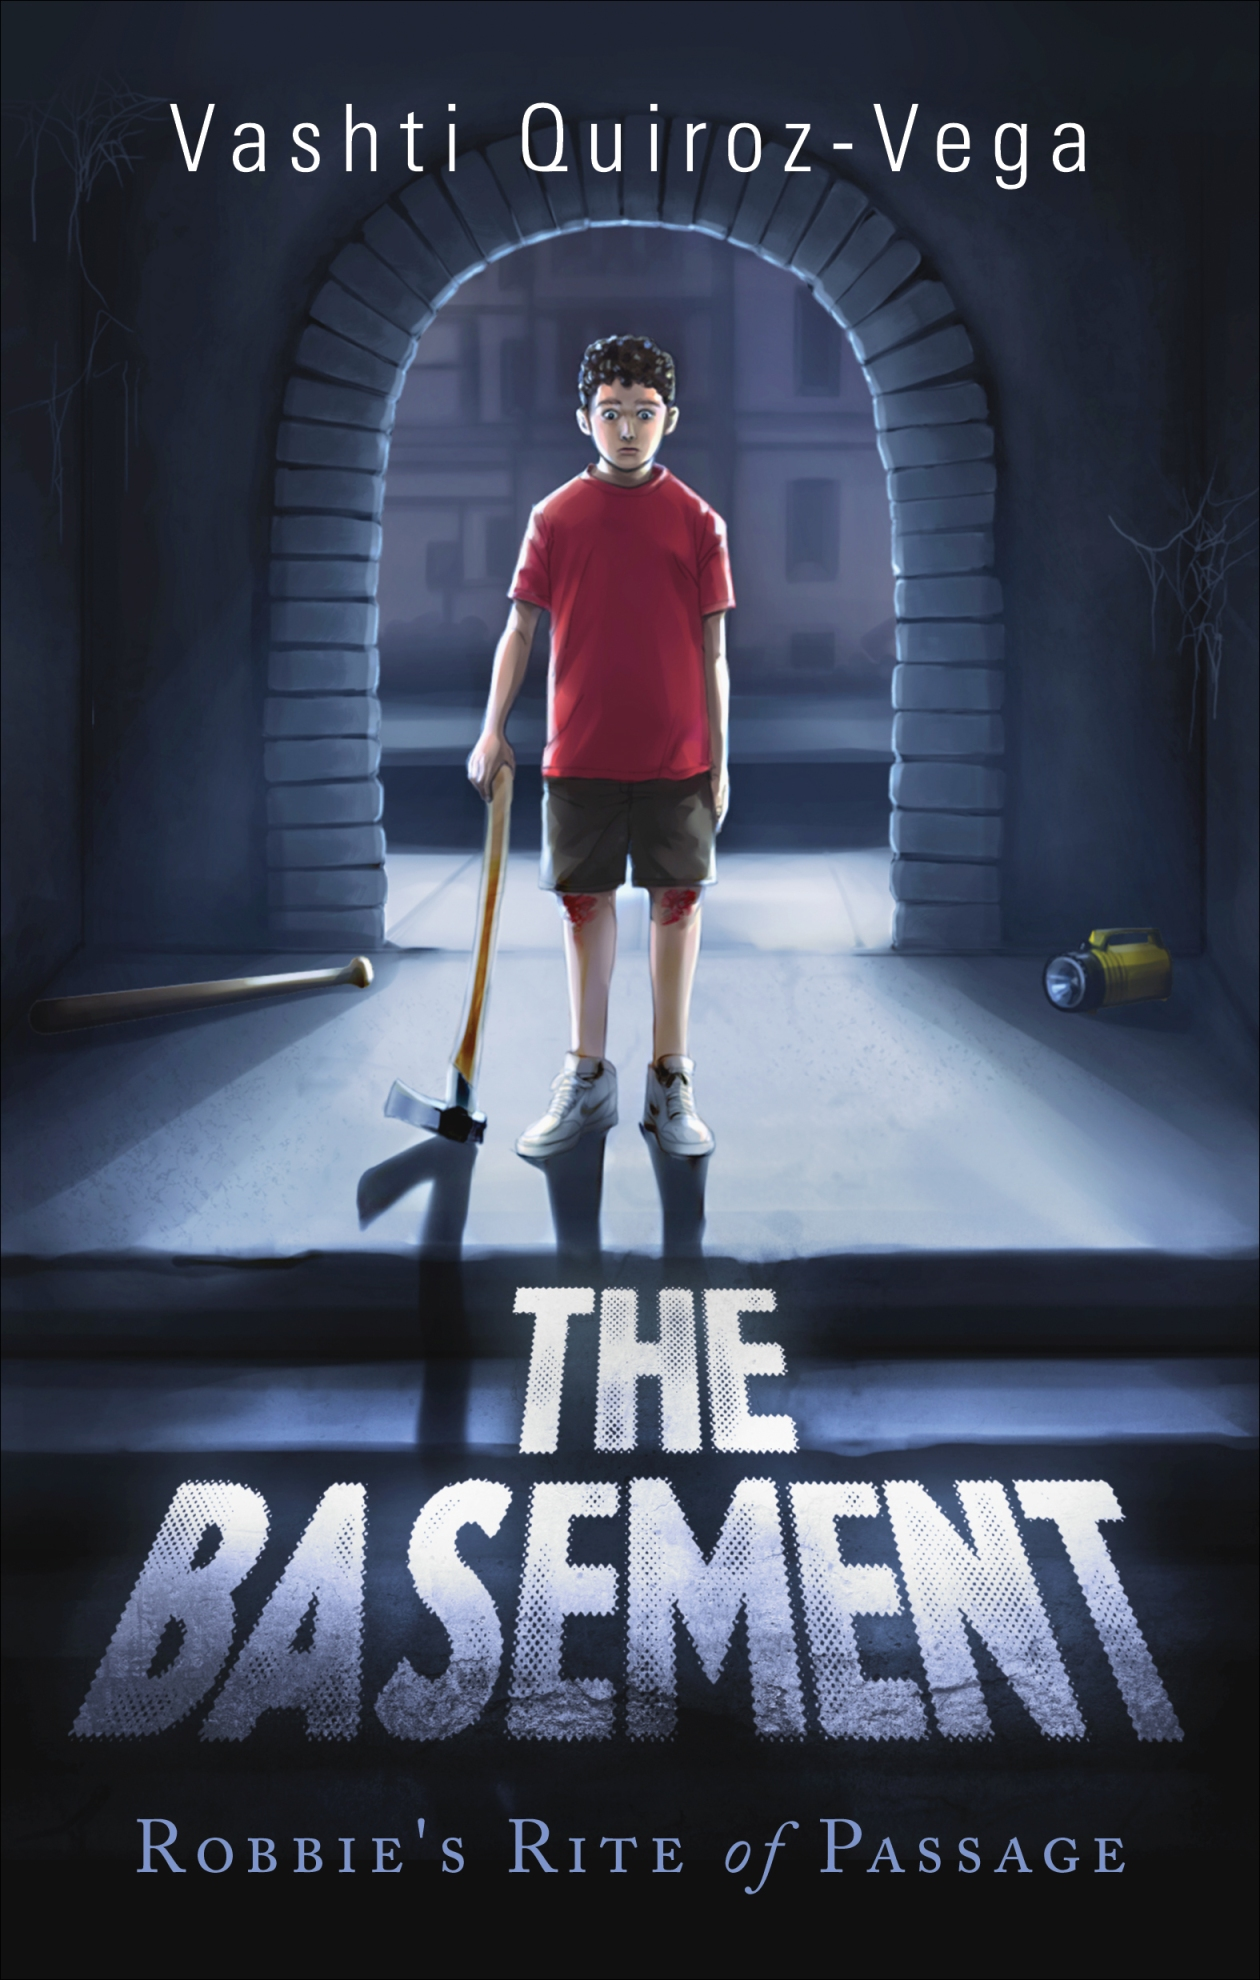 The Basement: Robbie's Rite of Passage